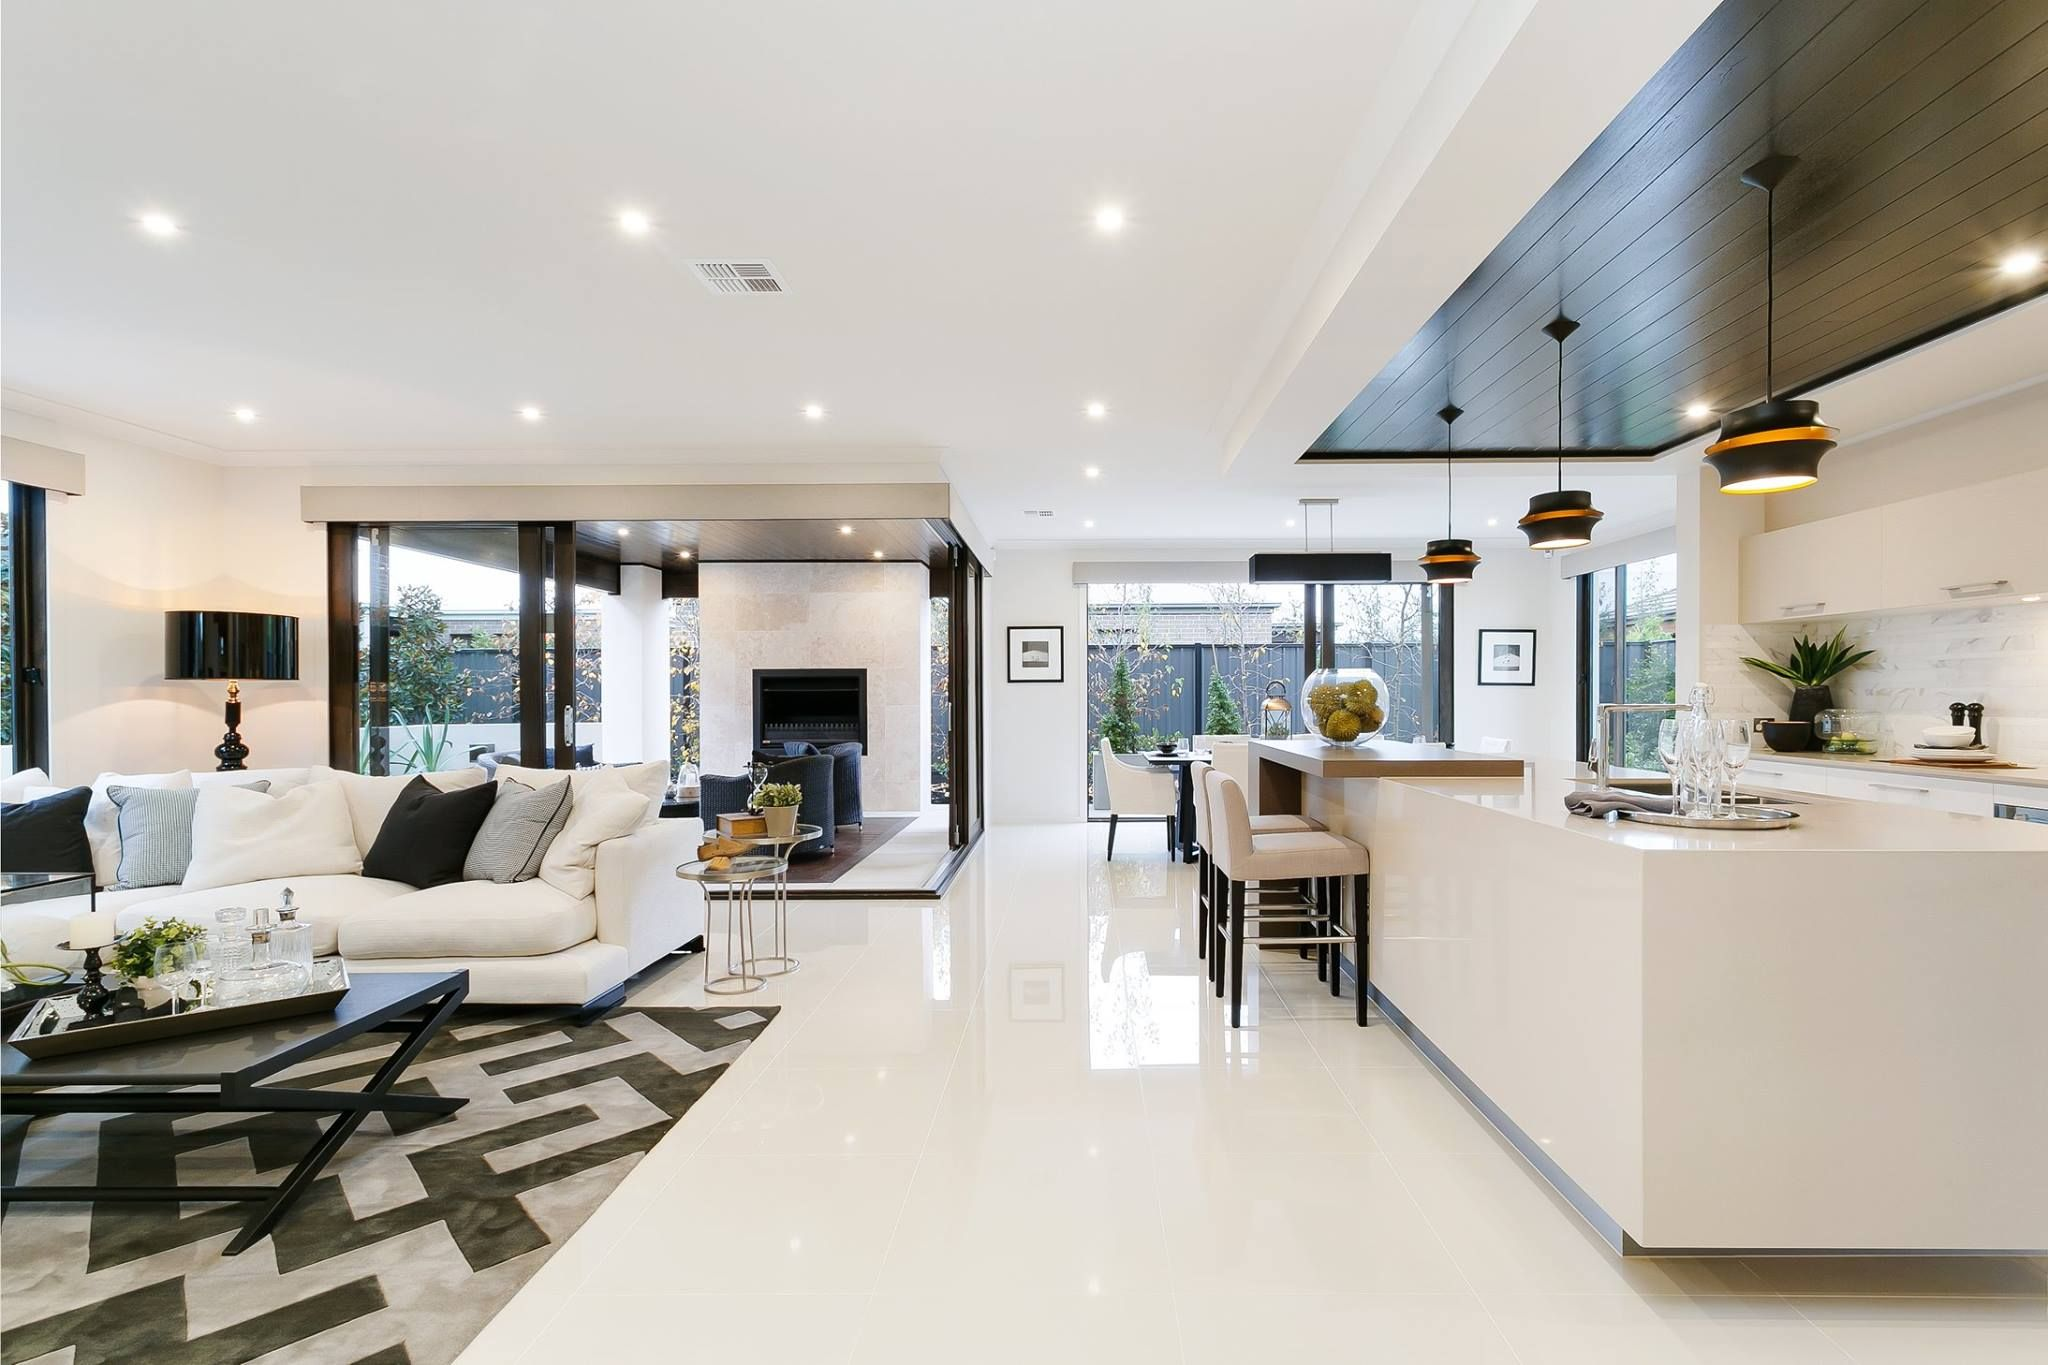 Interior decorating home decorating ideas metricon australian homes and floor planes for Metricon homes interior design